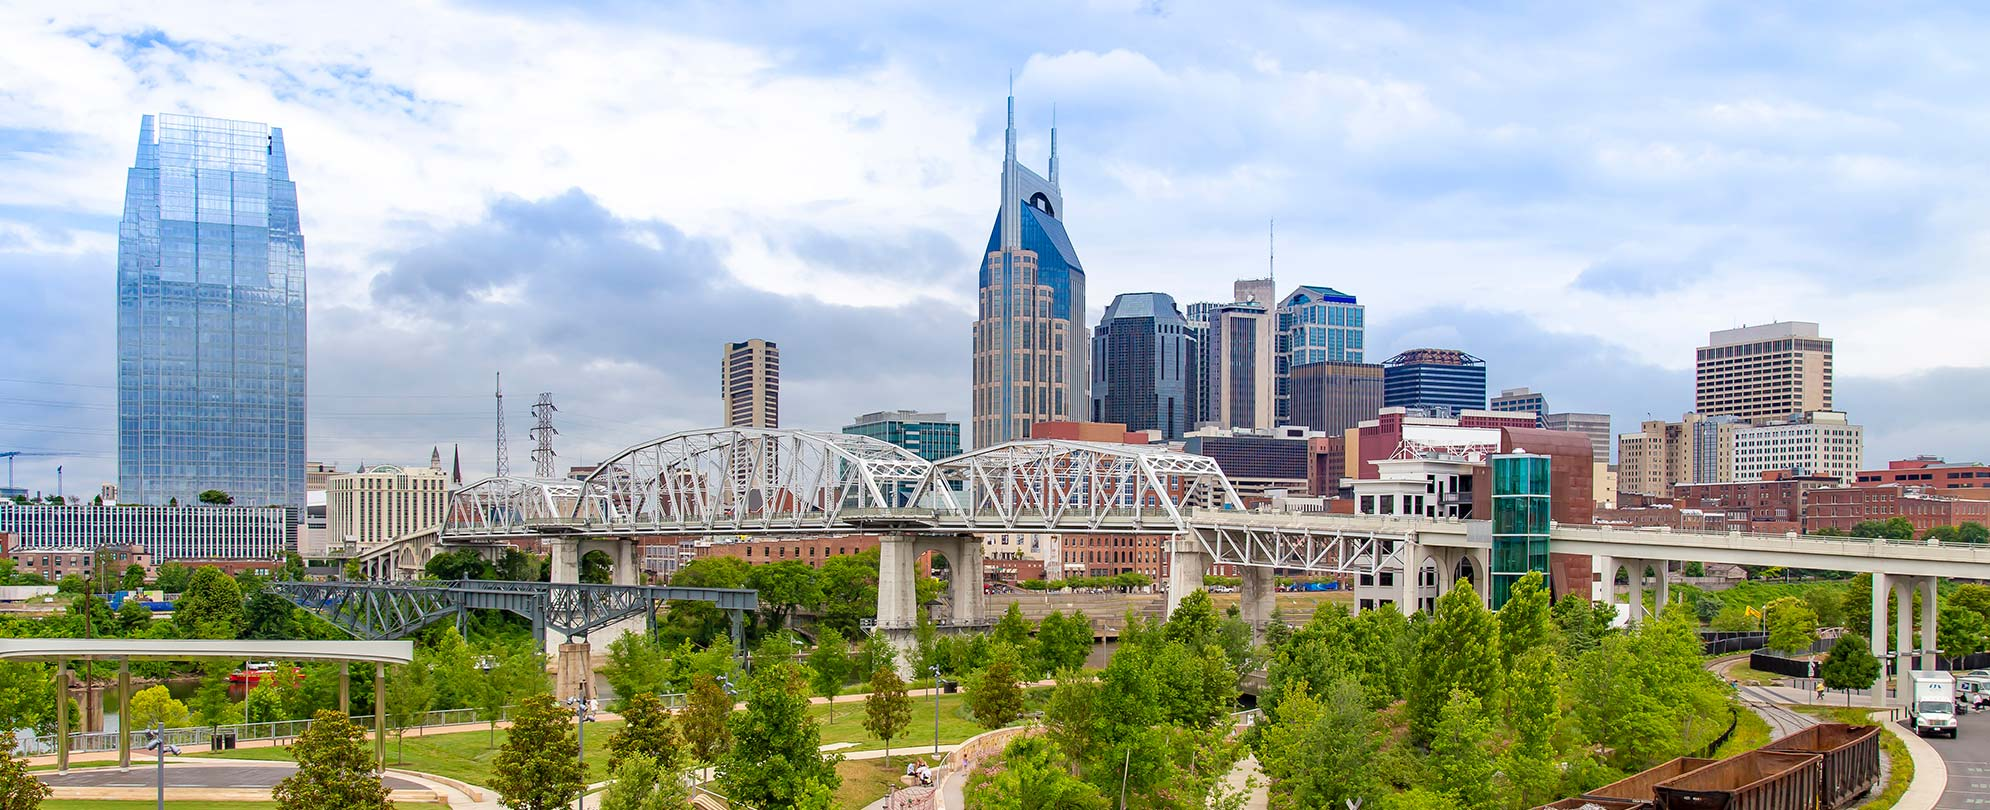 The pedestrian bridge and city skyline of Nashville, Tennessee on a clear, sunny day.